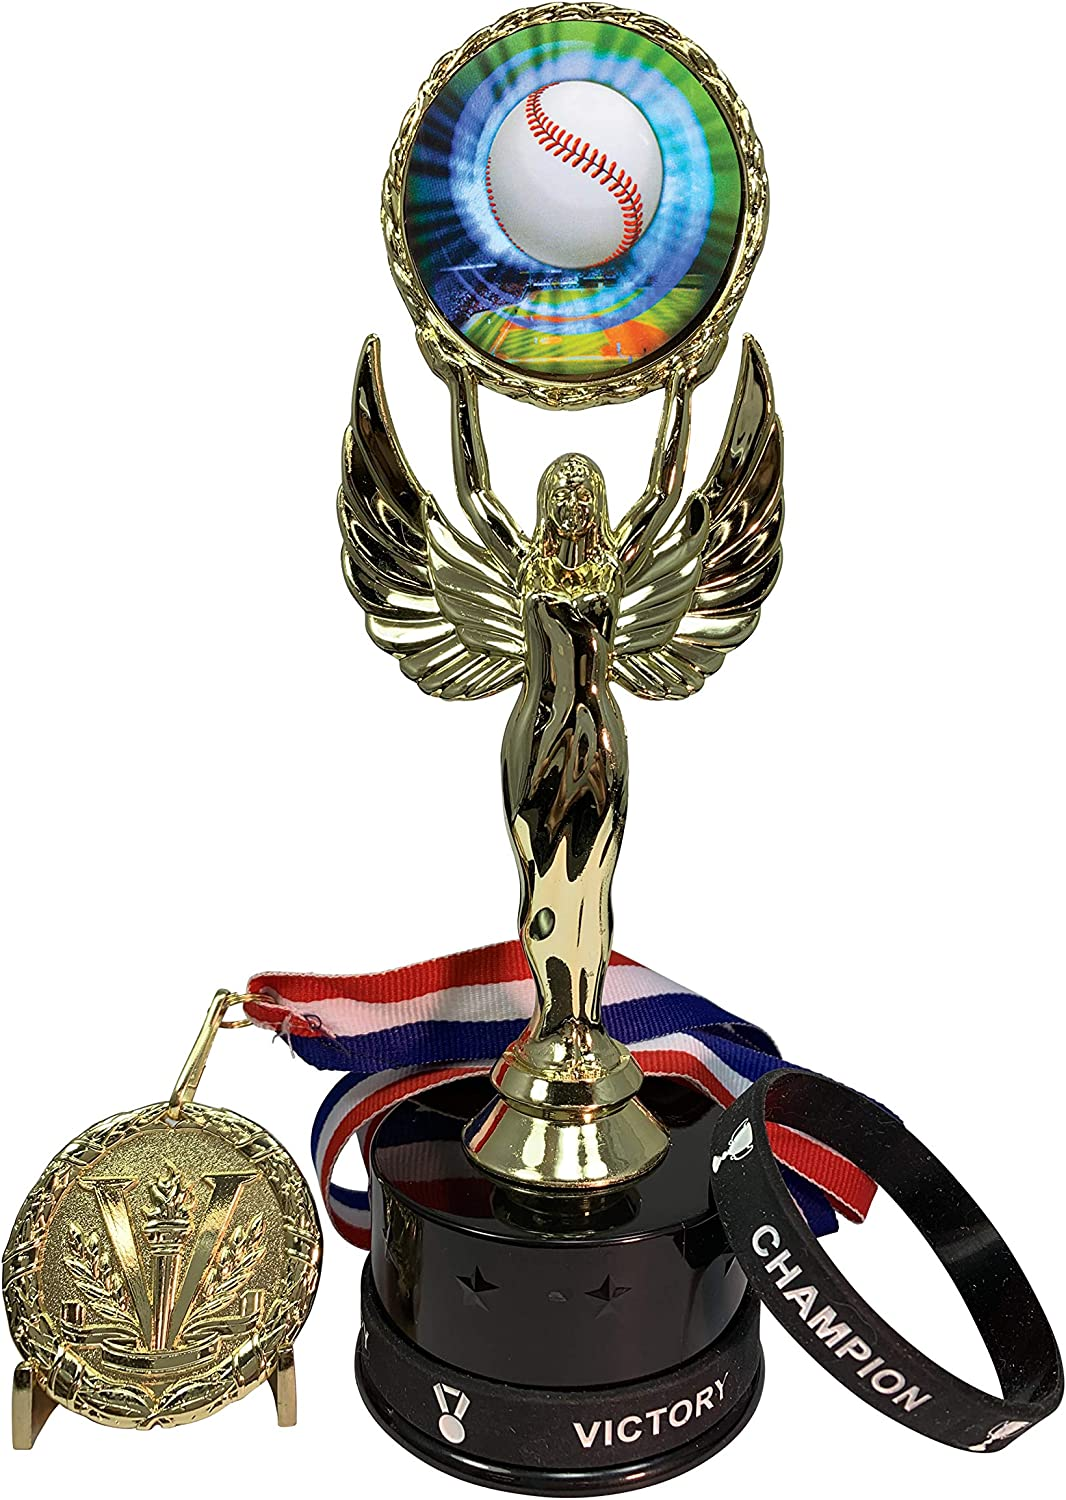 Tampa Mall Express Medals 1 to 12 Packs Baseball Trophy Awards That of Incl Super Special SALE held